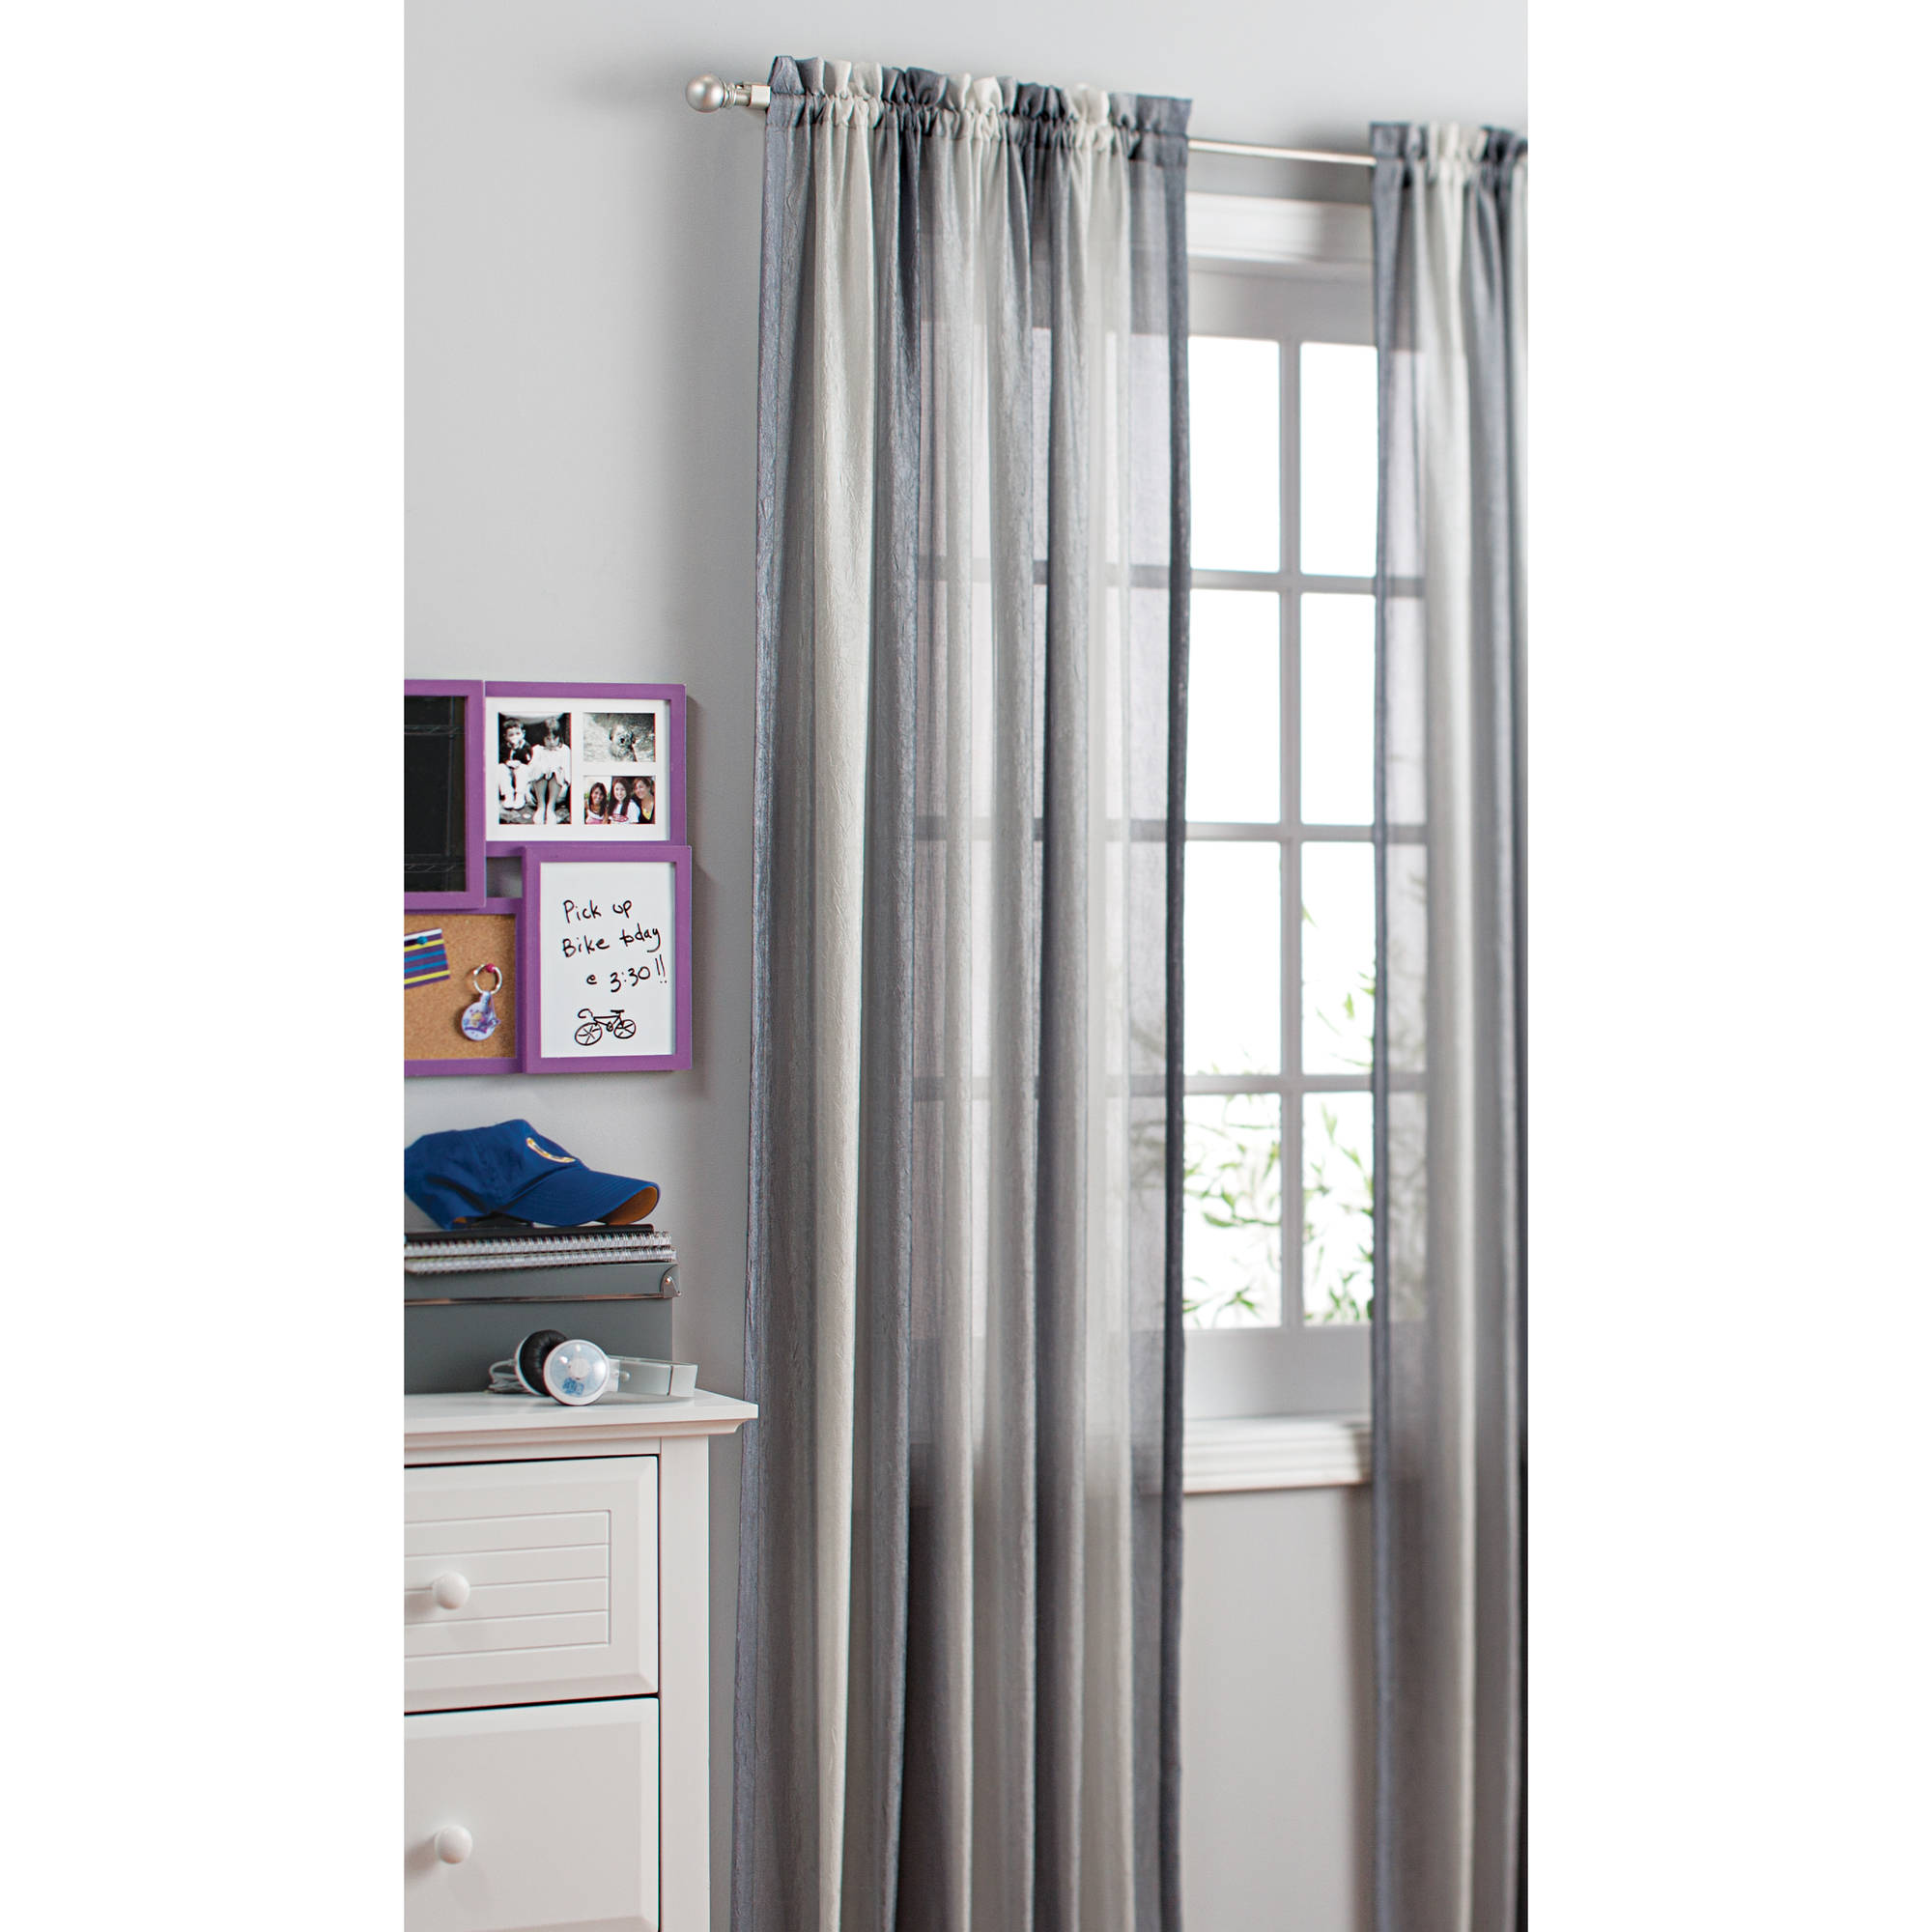 p panels curtain curtains shades tailored x pair ombre